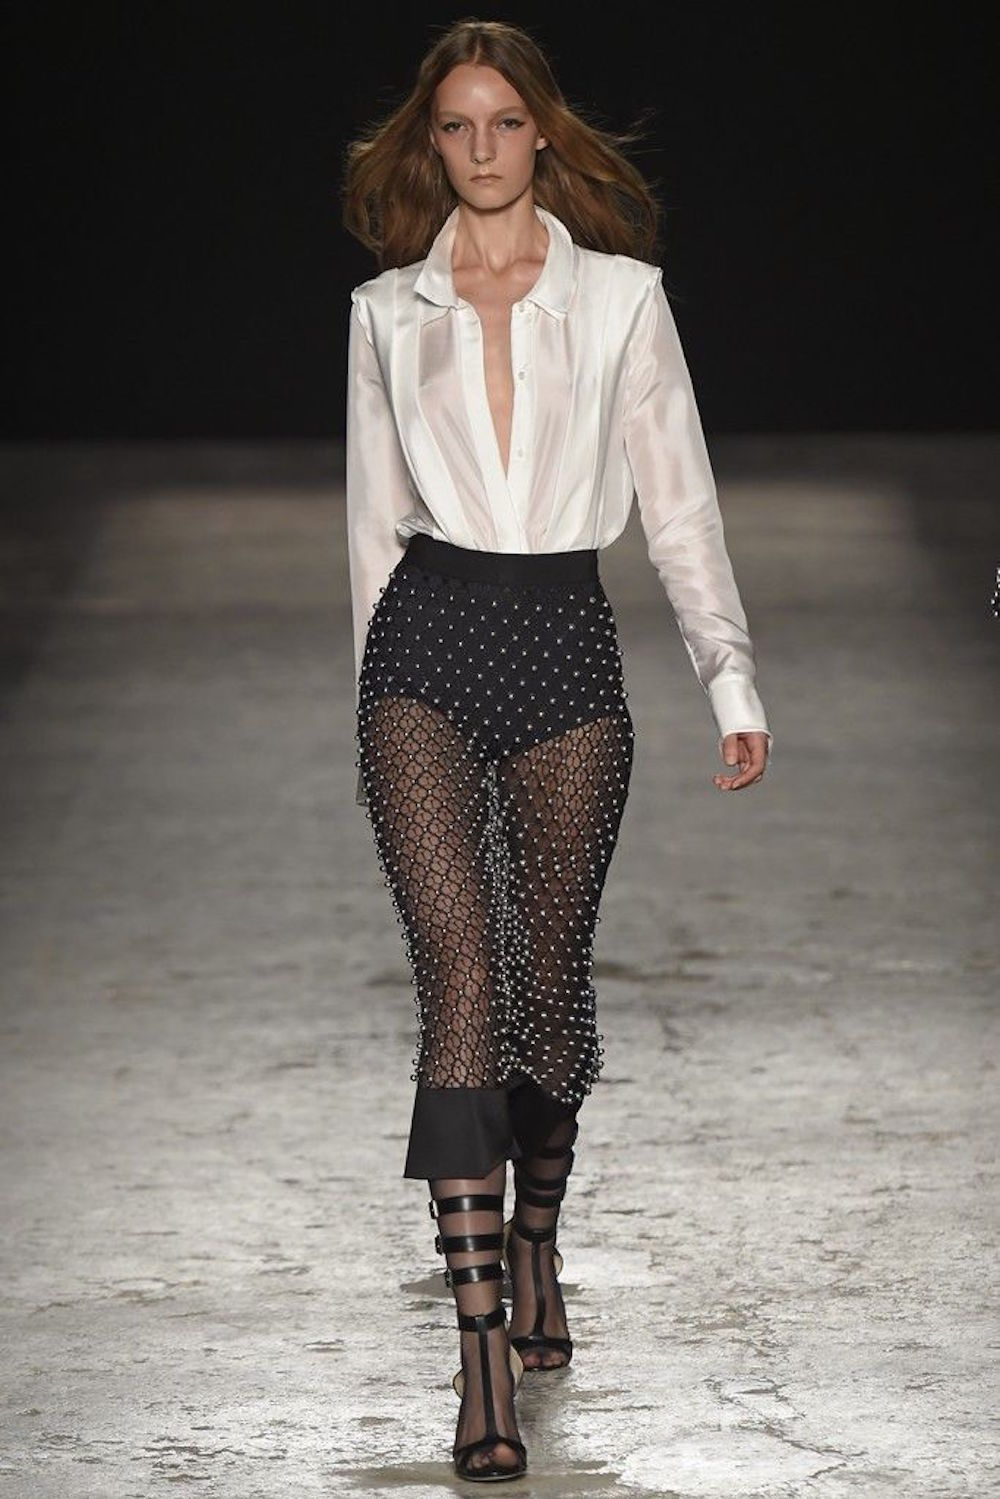 18-oracle-fox-sheer-Francesco-Scognamiglio-RTW-Spring-2015